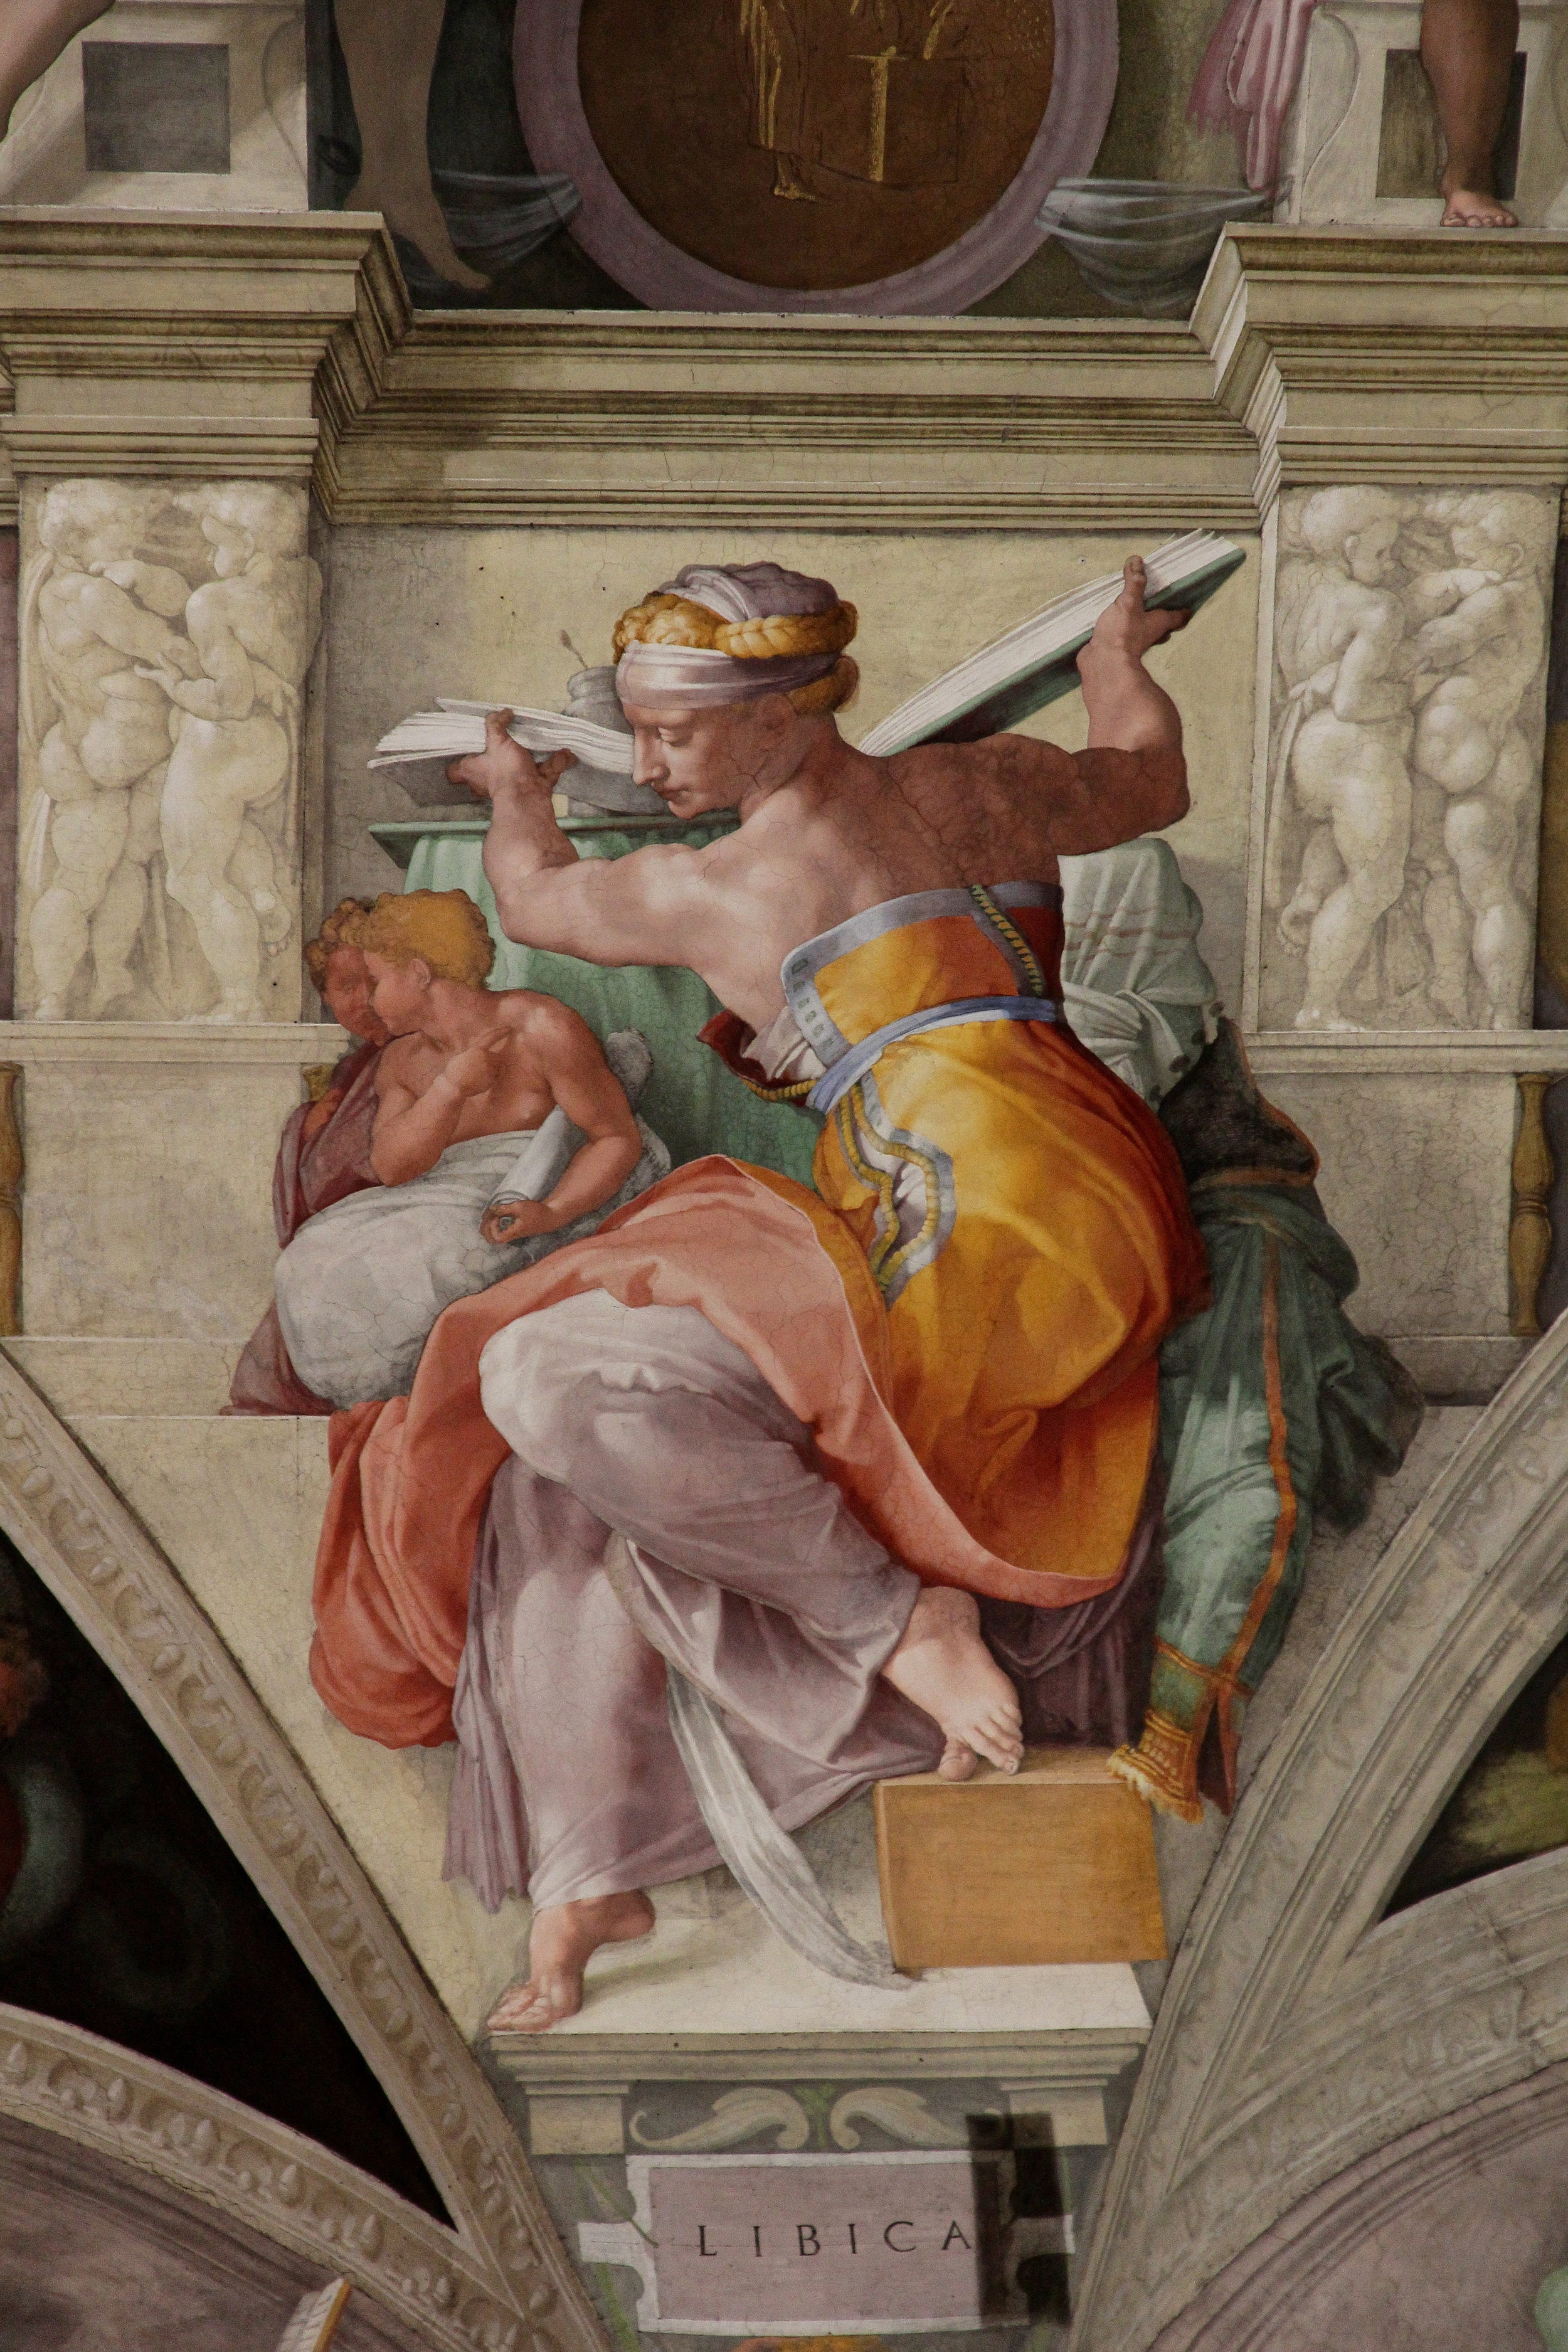 Michelangelo, Libyan Sibyl from the Sistine Chapel Ceiling, painted 1508-1512